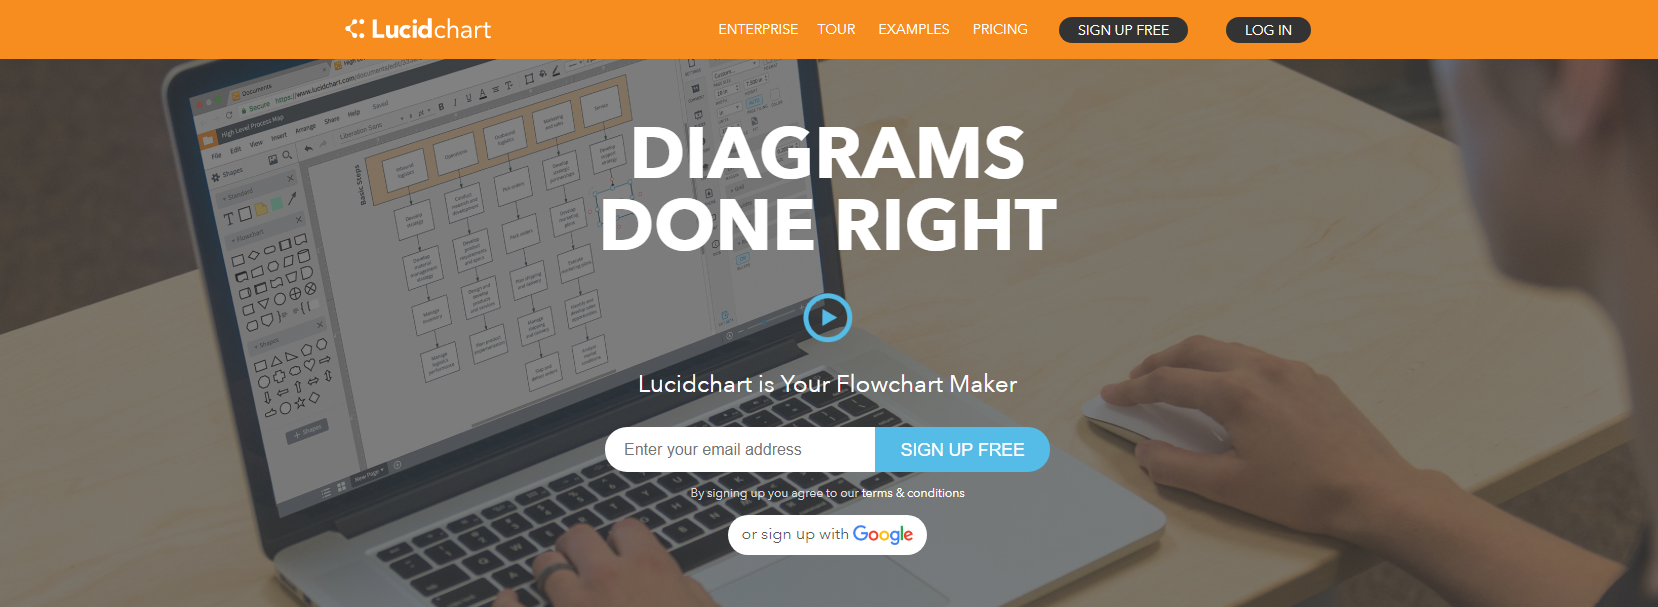 Lucidchart One Of The Best Diagramming Wireframing Apps